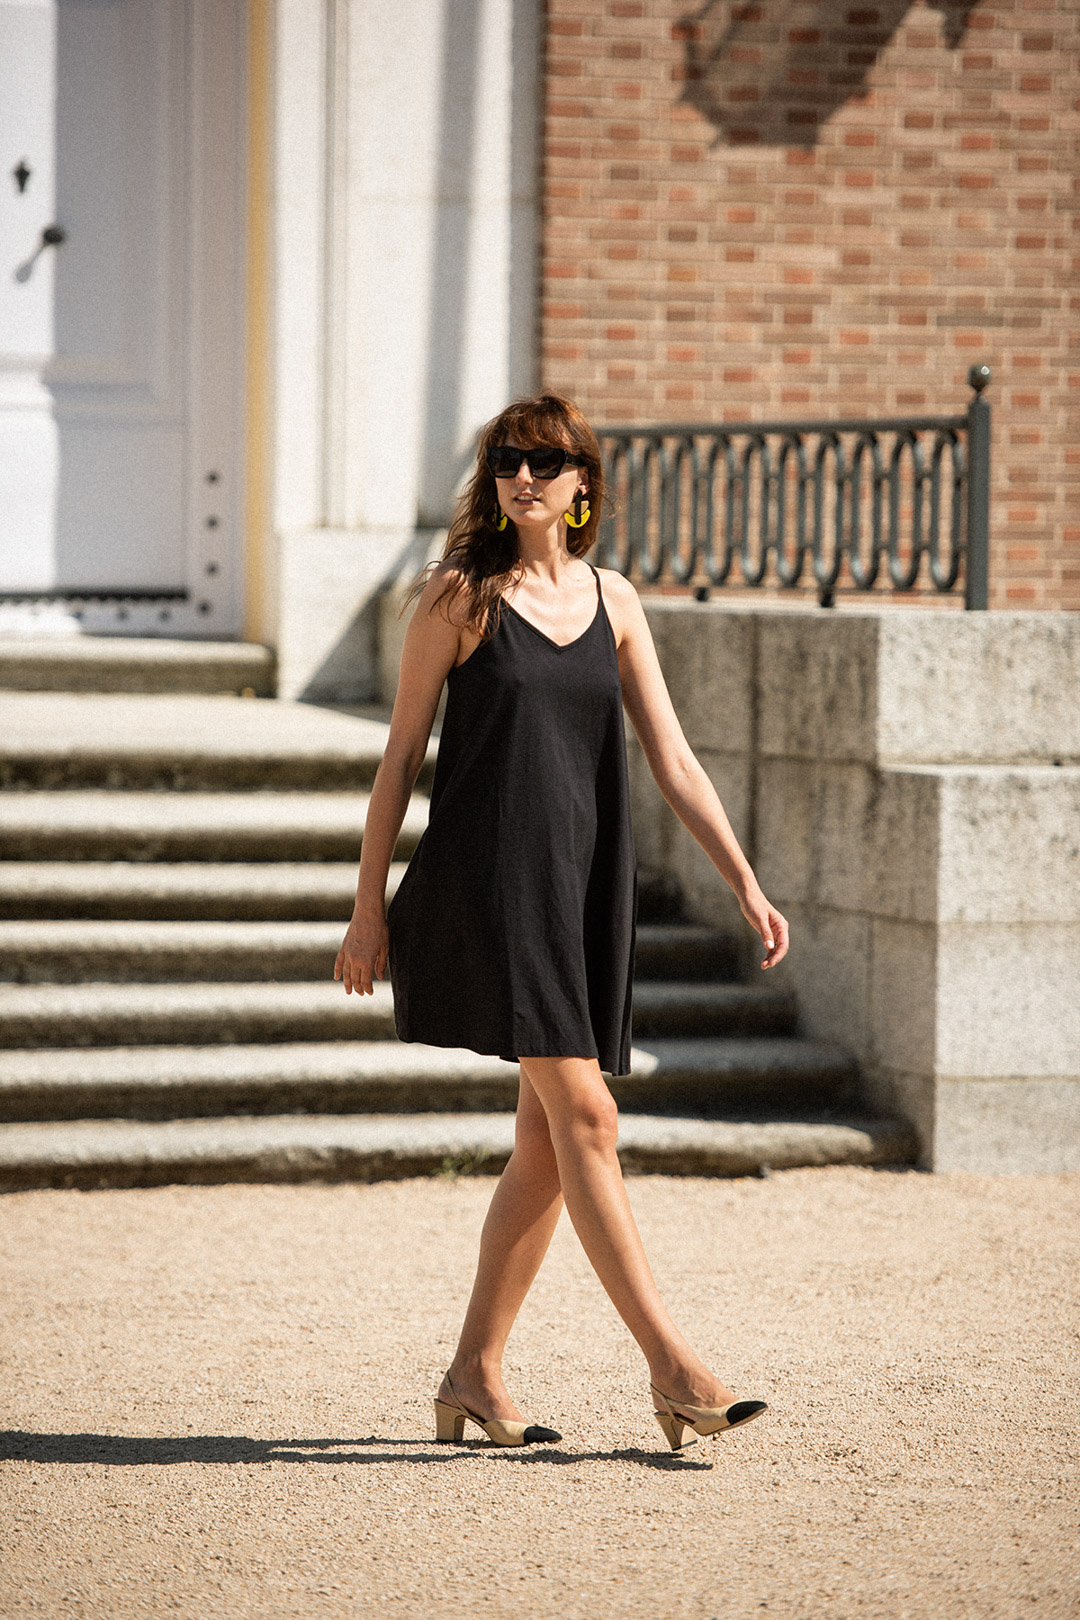 black-dress-summer-mayte-de-la-iglesia-3